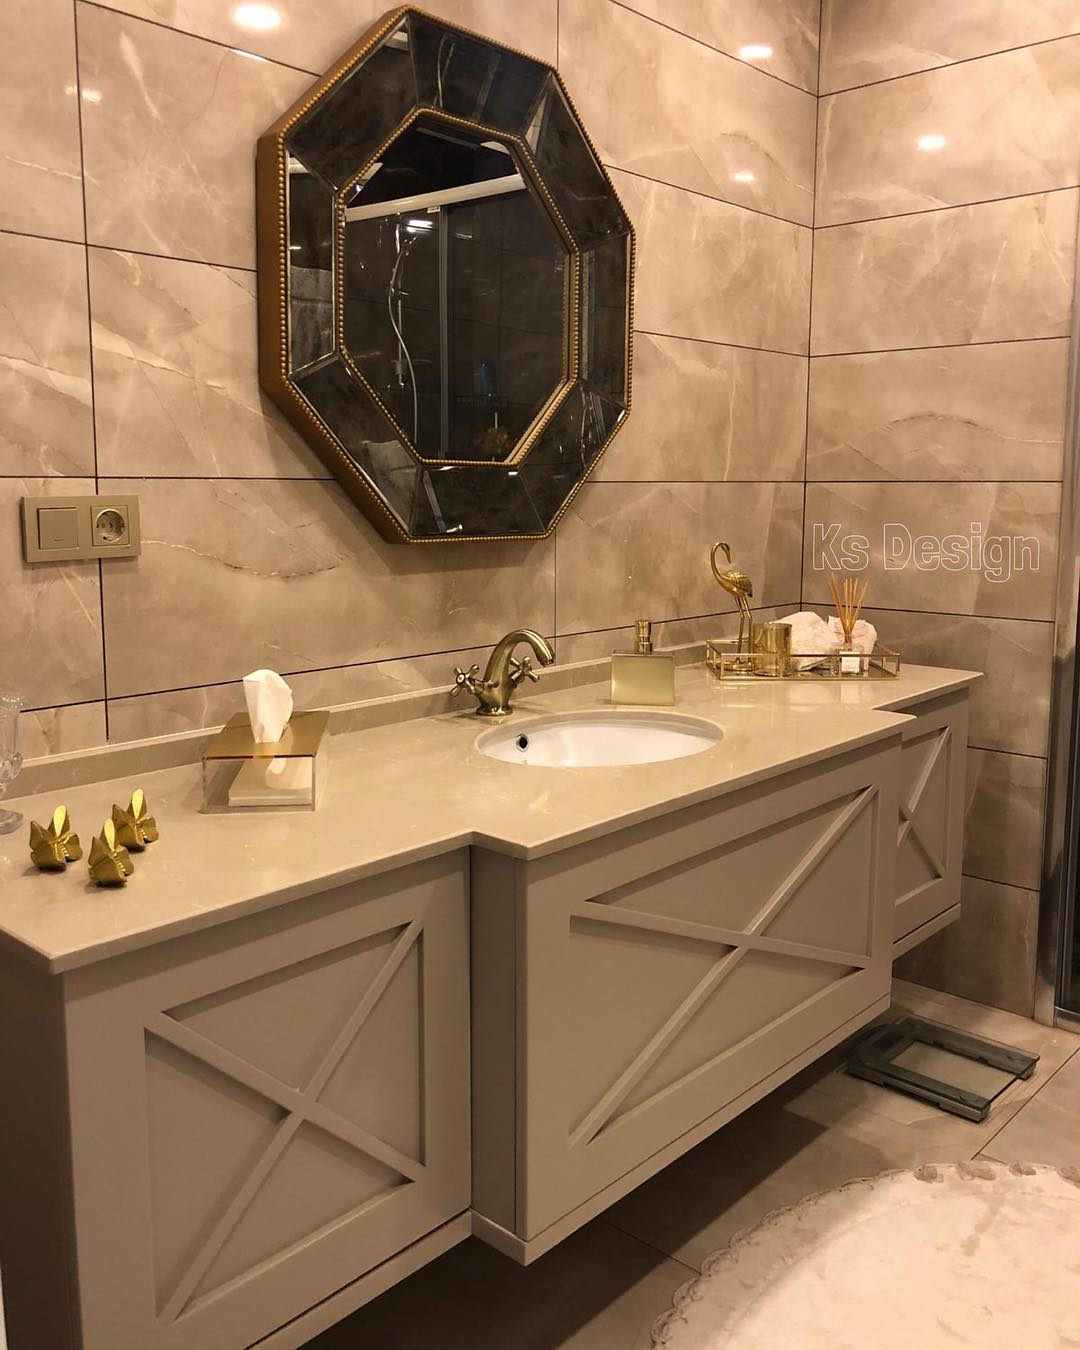 Bathroom decoration 2019 (11)